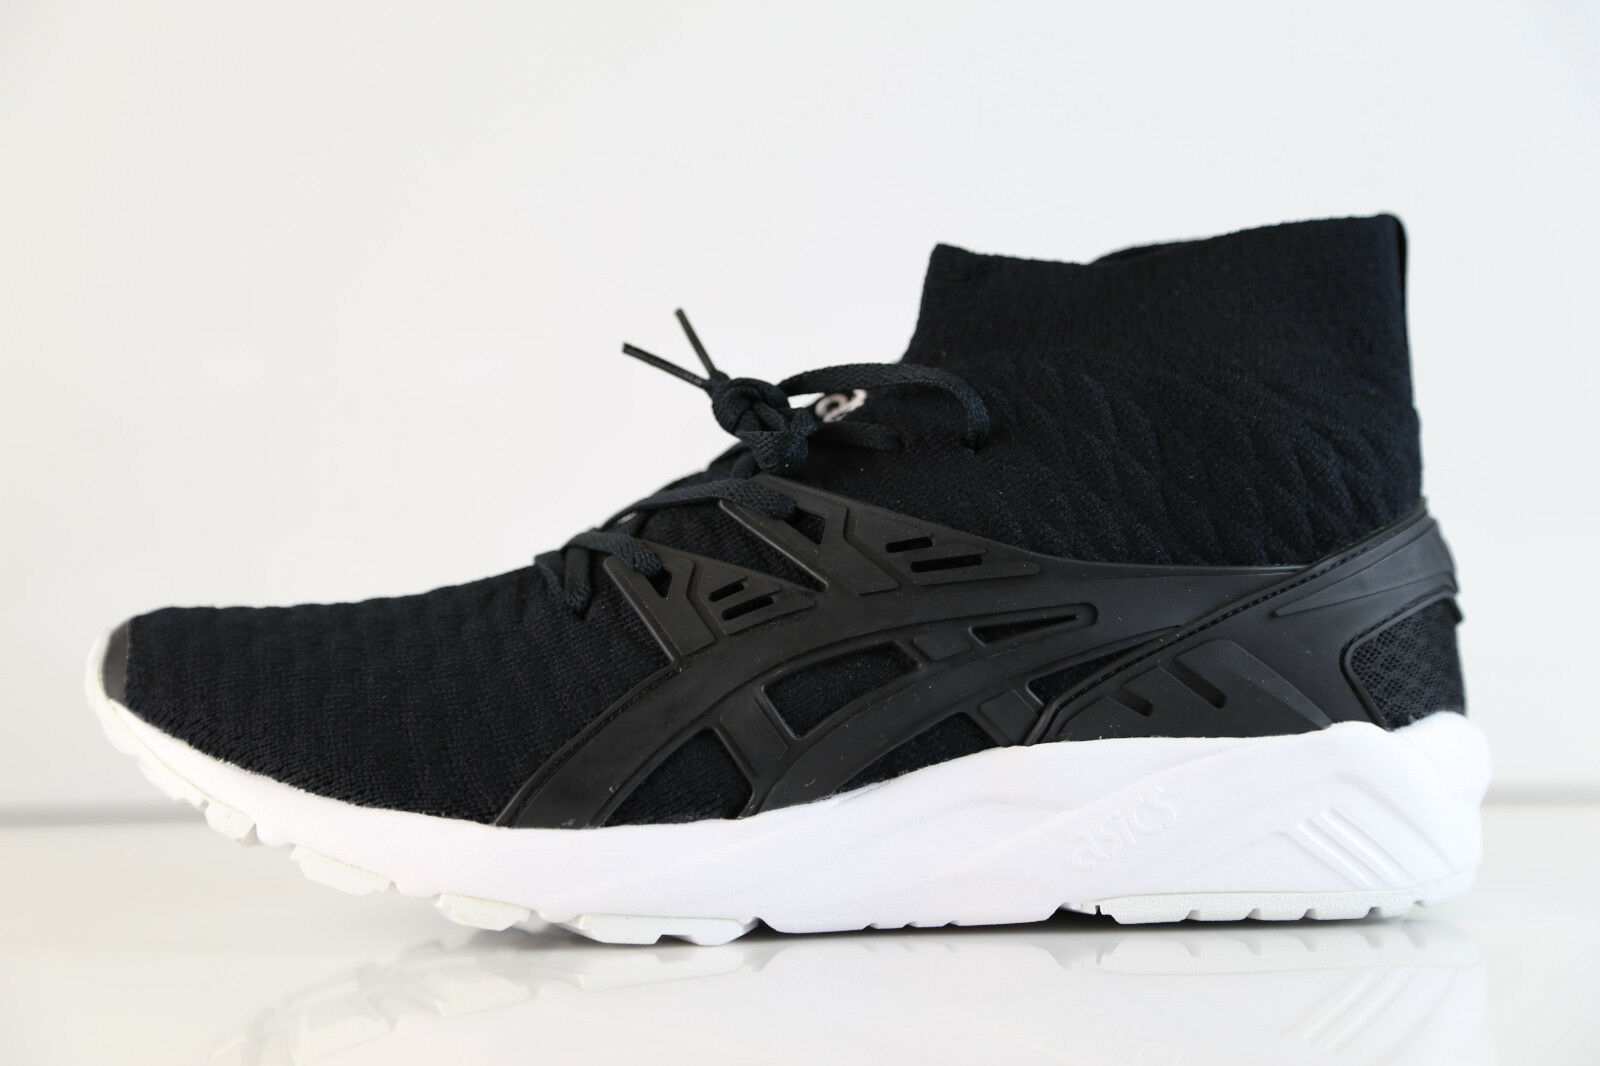 Asics Gel Kayano Trainer Knit MT Black H7P4N 9090 8-11.5 rf pk lyte